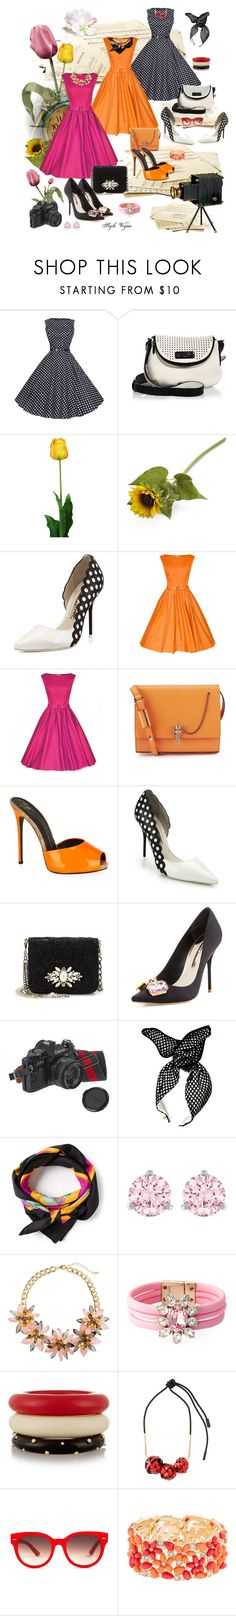 """""""Vintage romantic"""" by lamipaz ❤ liked on Polyvore featuring Marc by Marc Jacobs, Laura Cole, Crate and Barrel, Sophia Webster, Carven, Giuseppe Zanotti, Dolce&Gabbana, American Eagle Outfitters, Hermès and Swarovski"""